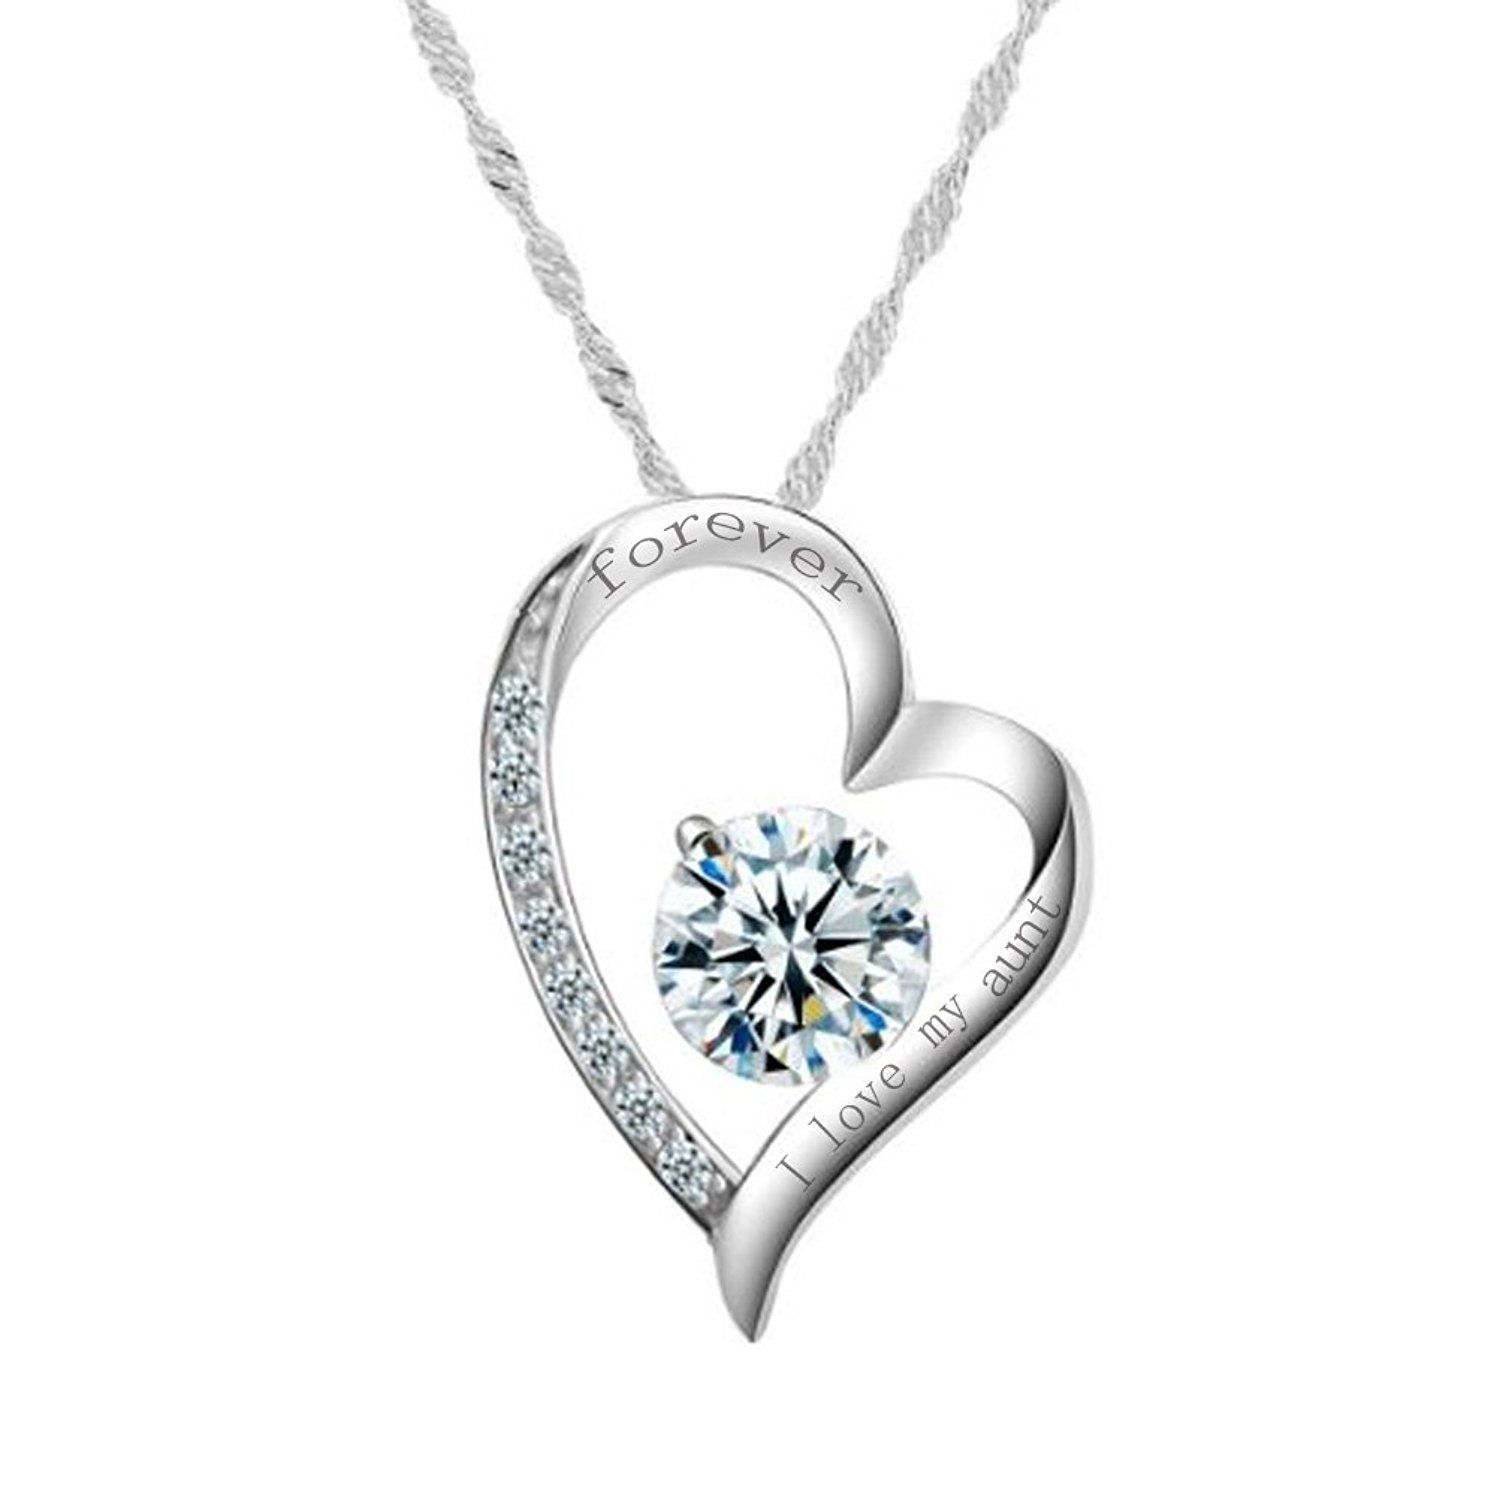 Sterling Silver Heart 'I Love My Aunt Forever' Necklace Cubic Zirconia Engraved Pendant for Women * Check out this great product. (This is an affiliate link and I receive a commission for the sales)